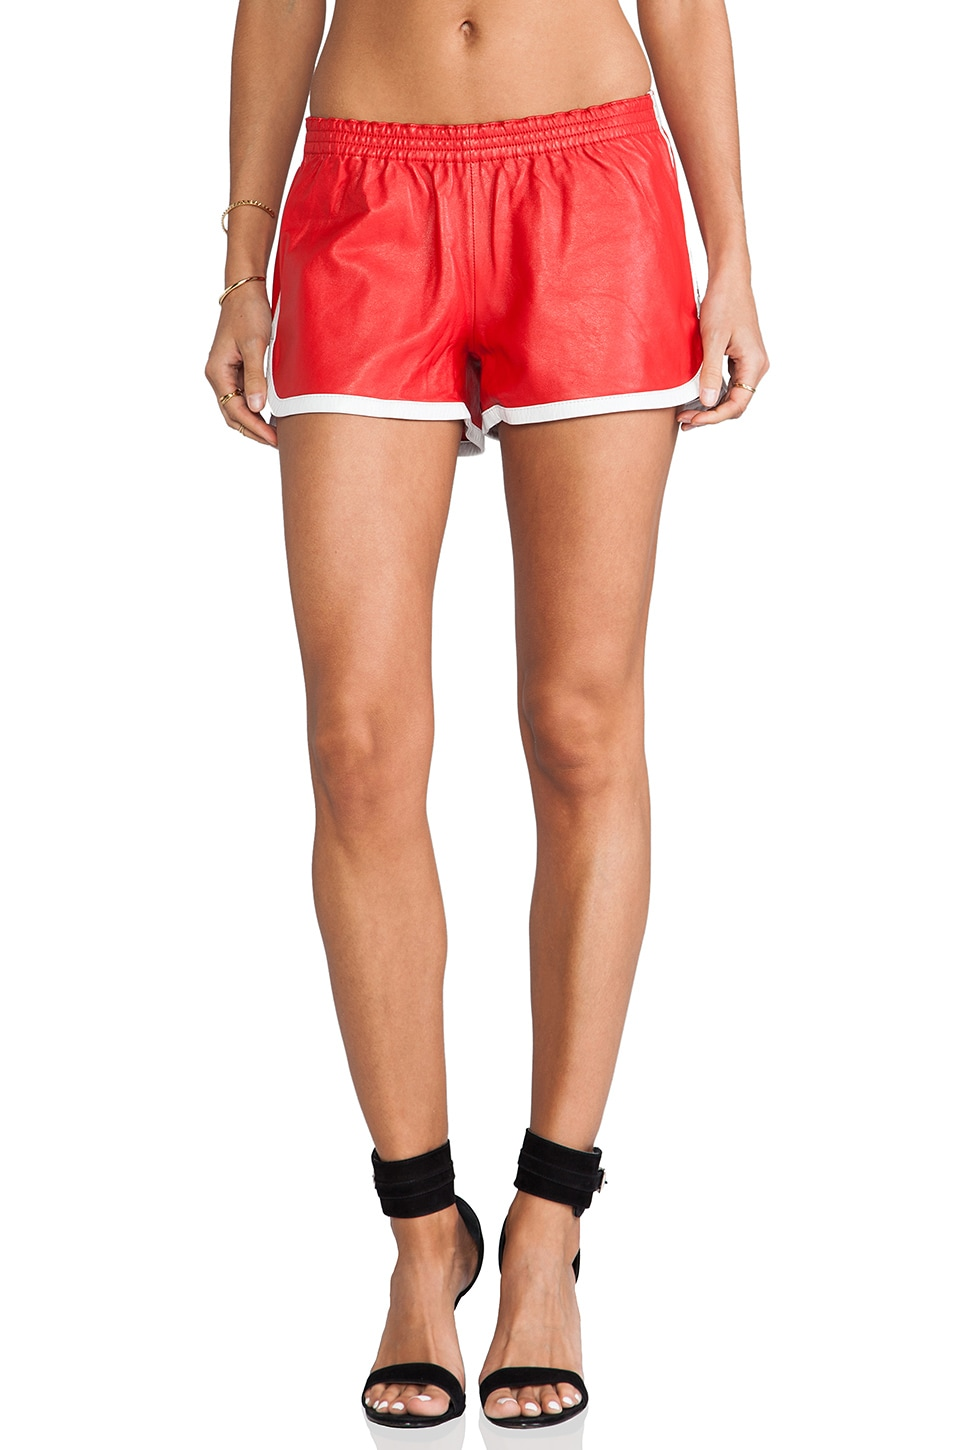 LOVE LEATHER Lets Rally Short in Red & White Piping